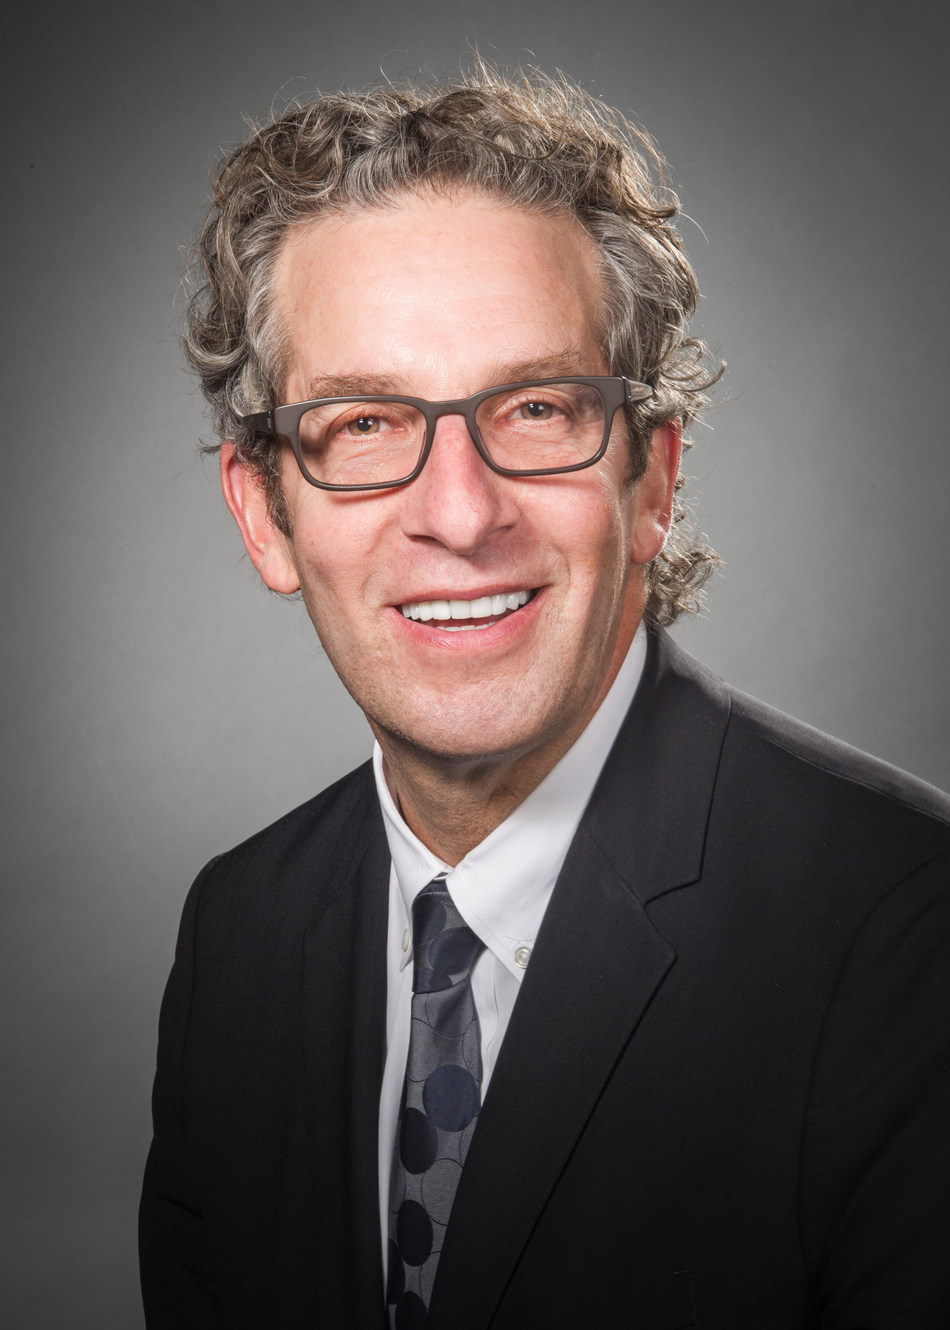 Louis Potters, MD, deputy physician-in-chief and chairman of radiation medicine at the Northwell Health Cancer Institute, and professor at the Feinstein Institute for Medical Research